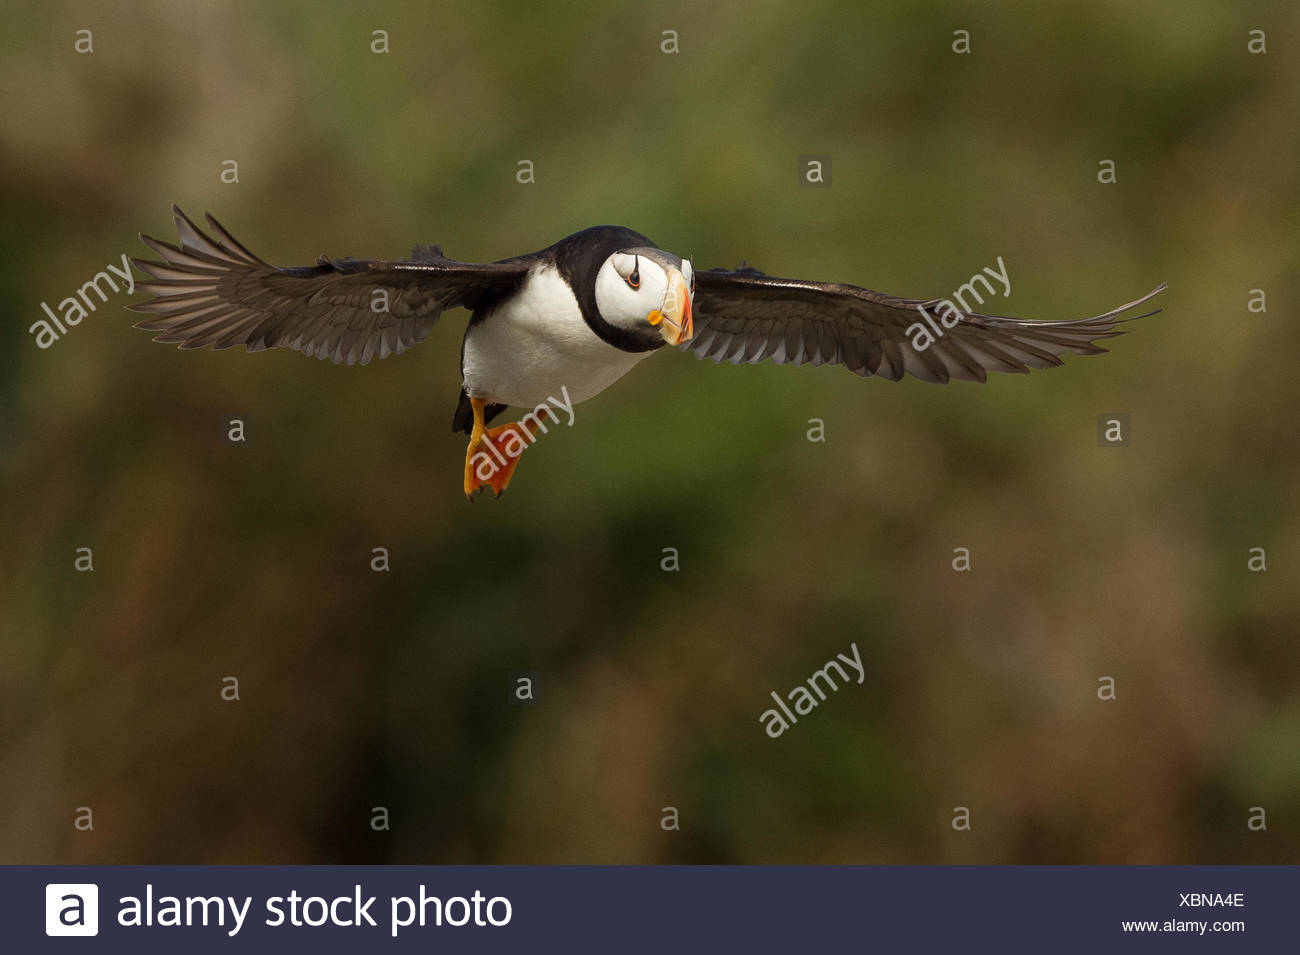 Puffin in flight above Lake Clark National Park. - Stock Image